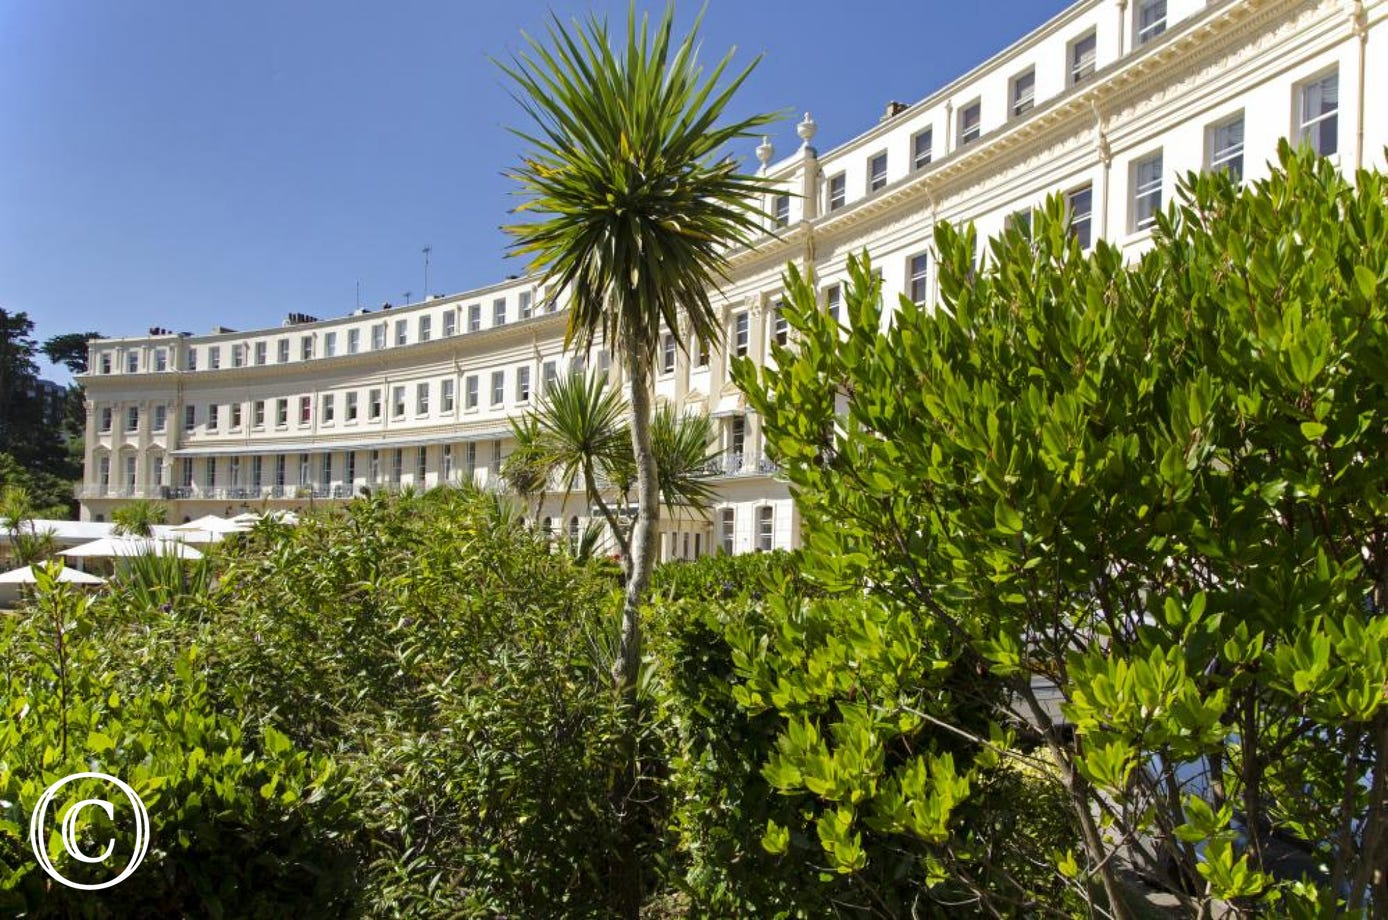 The Iconic Building of Hesketh Crescent in Torquay